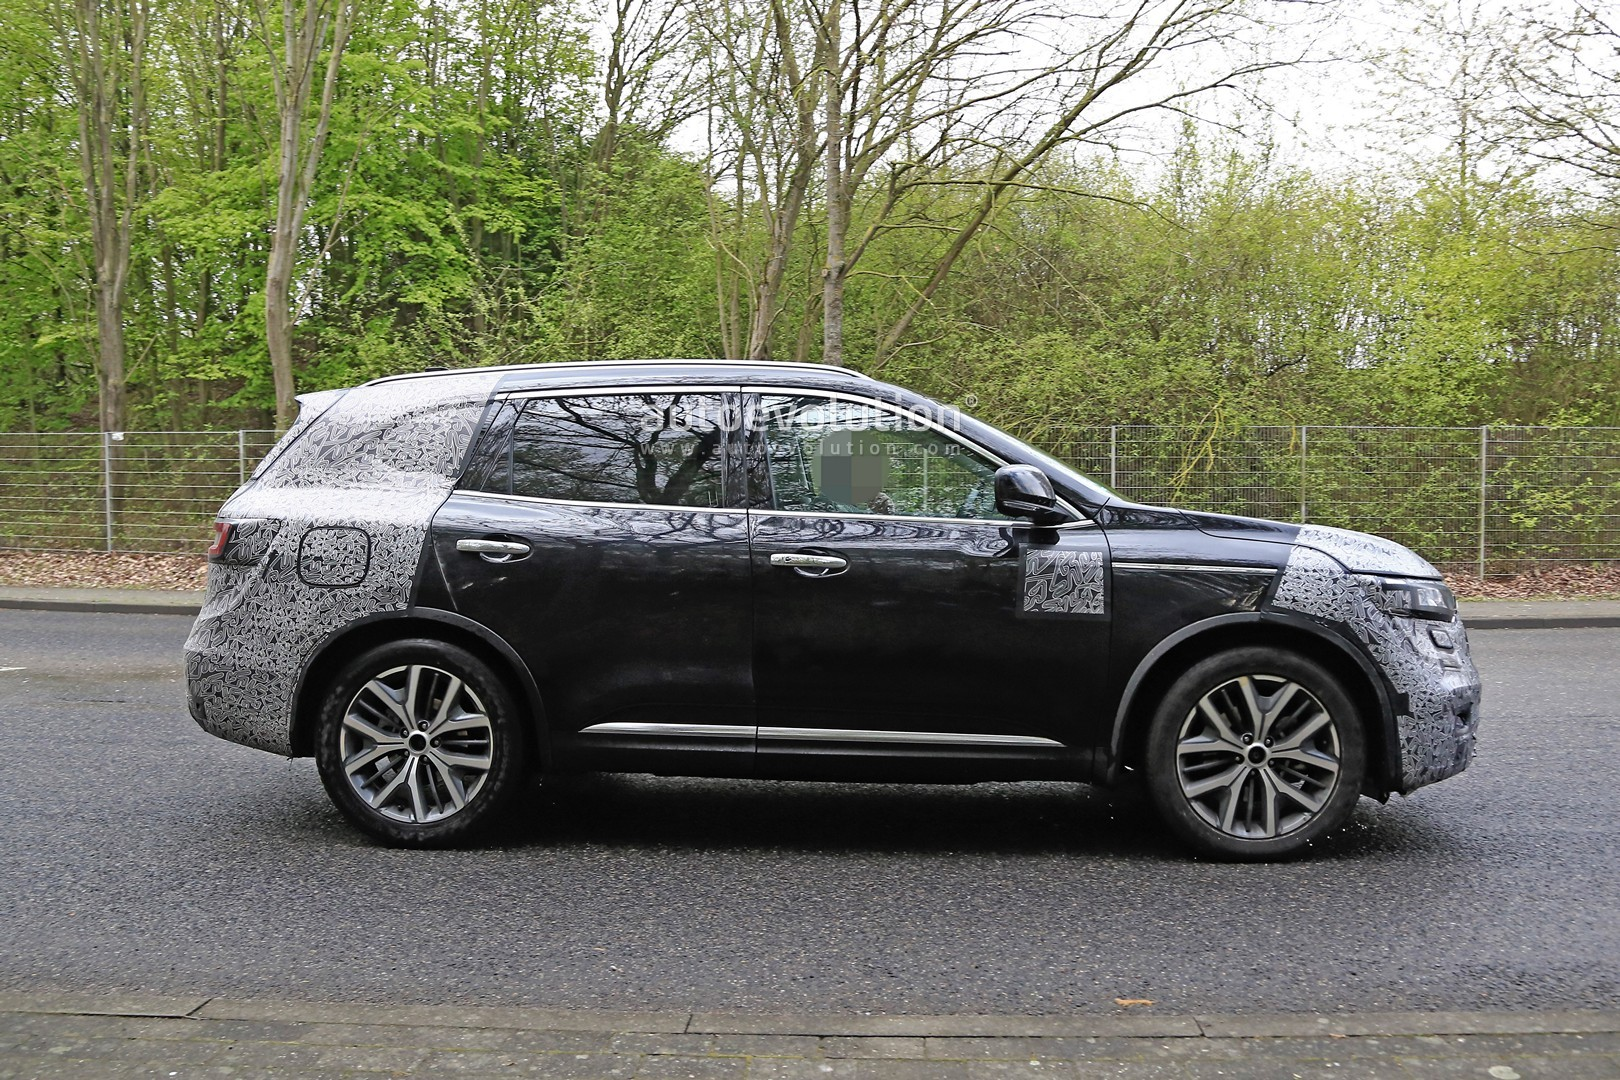 2020 Renault Koleos Facelift Spied: Can It Be Fixed ...